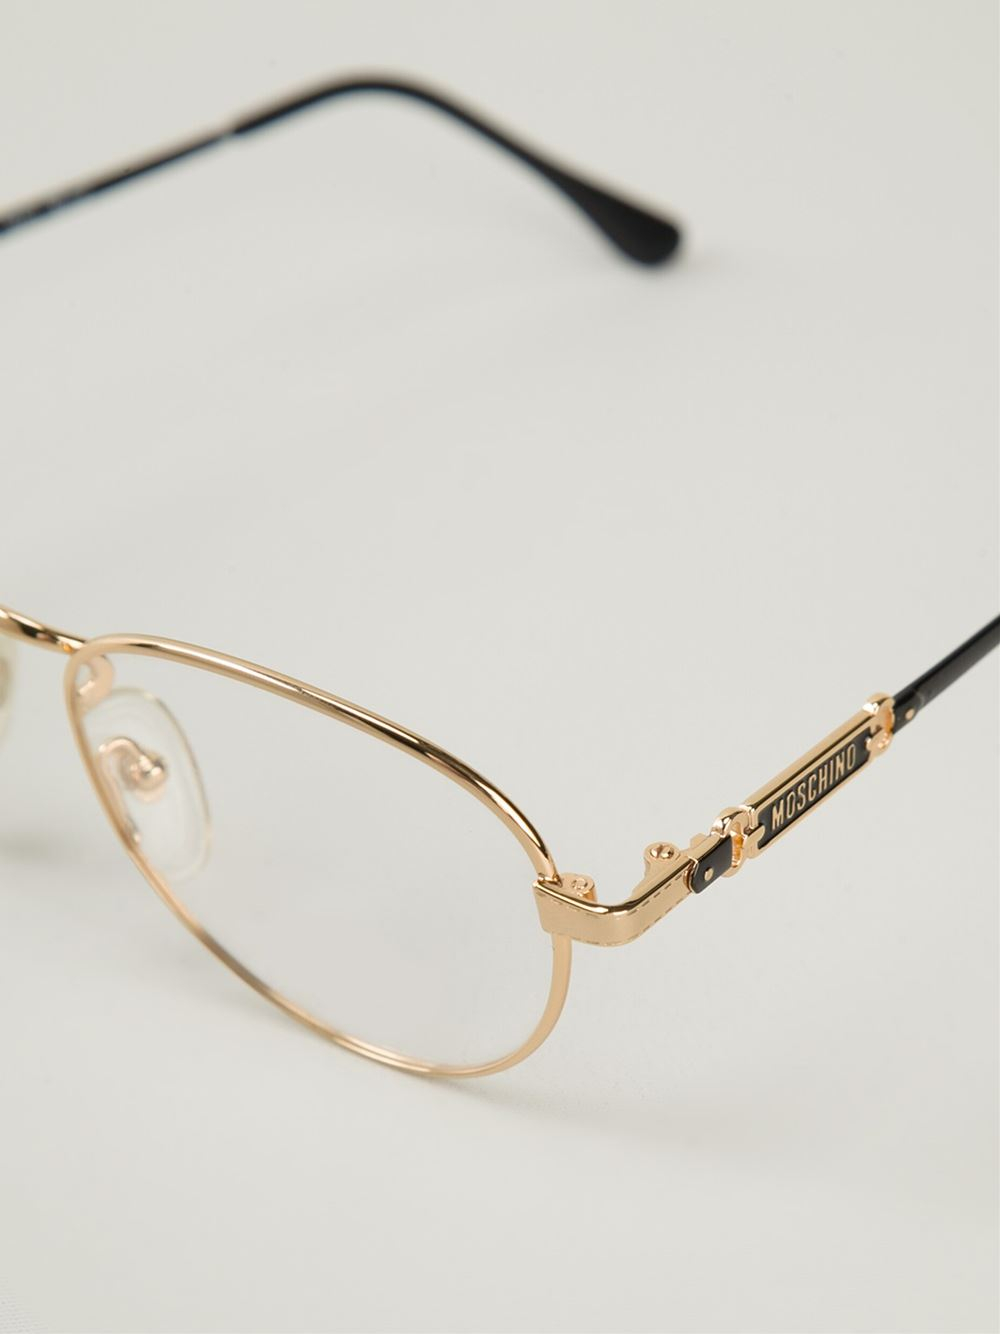 Contemporary Moschino Frames Glasses Image - Picture Frame Ideas ...